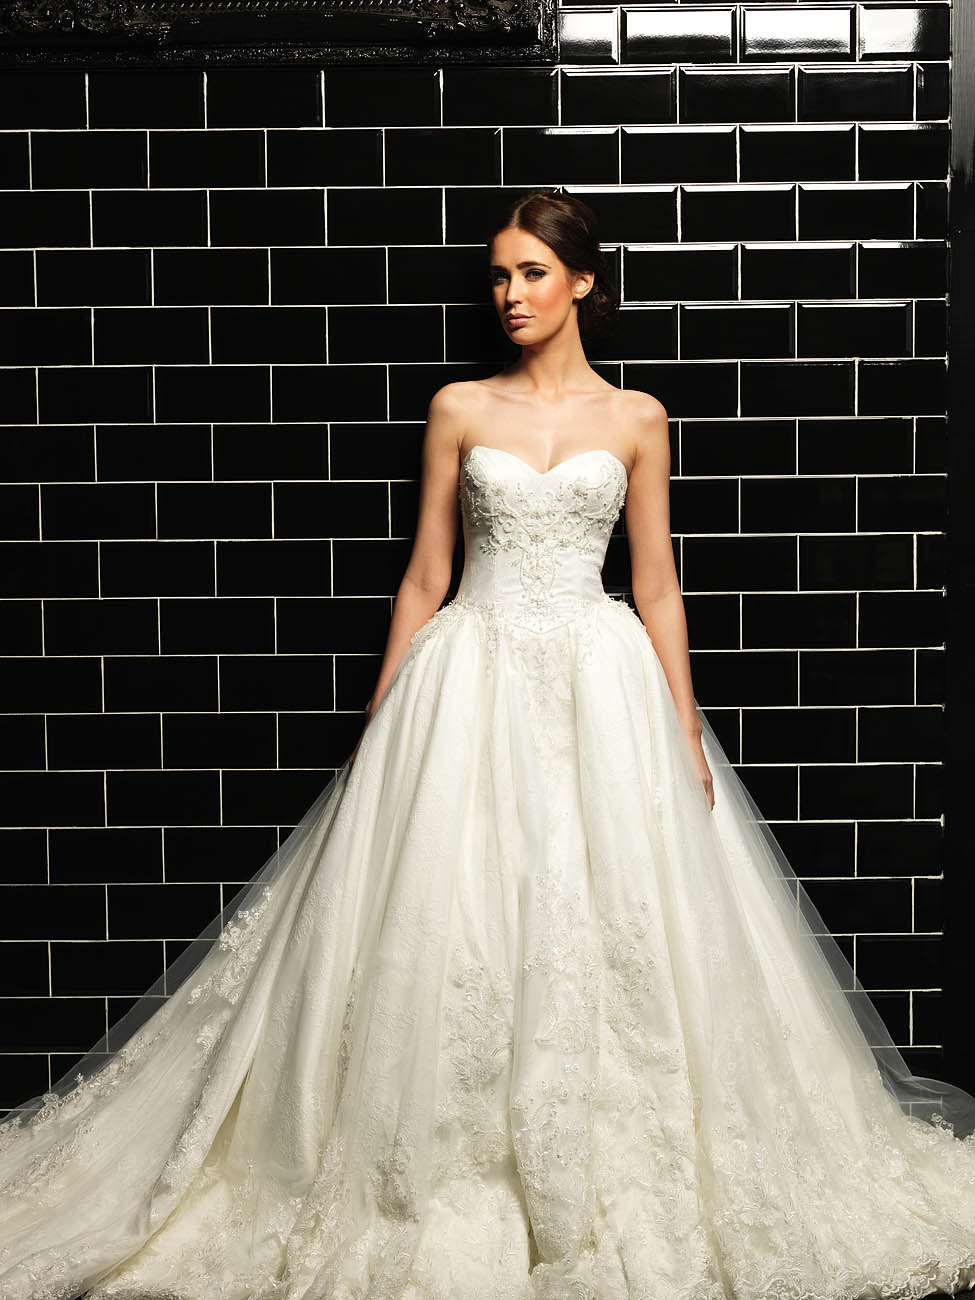 Wedding dress shop melbourne best bridal shop melbourne for Wedding dresses under 3000 melbourne